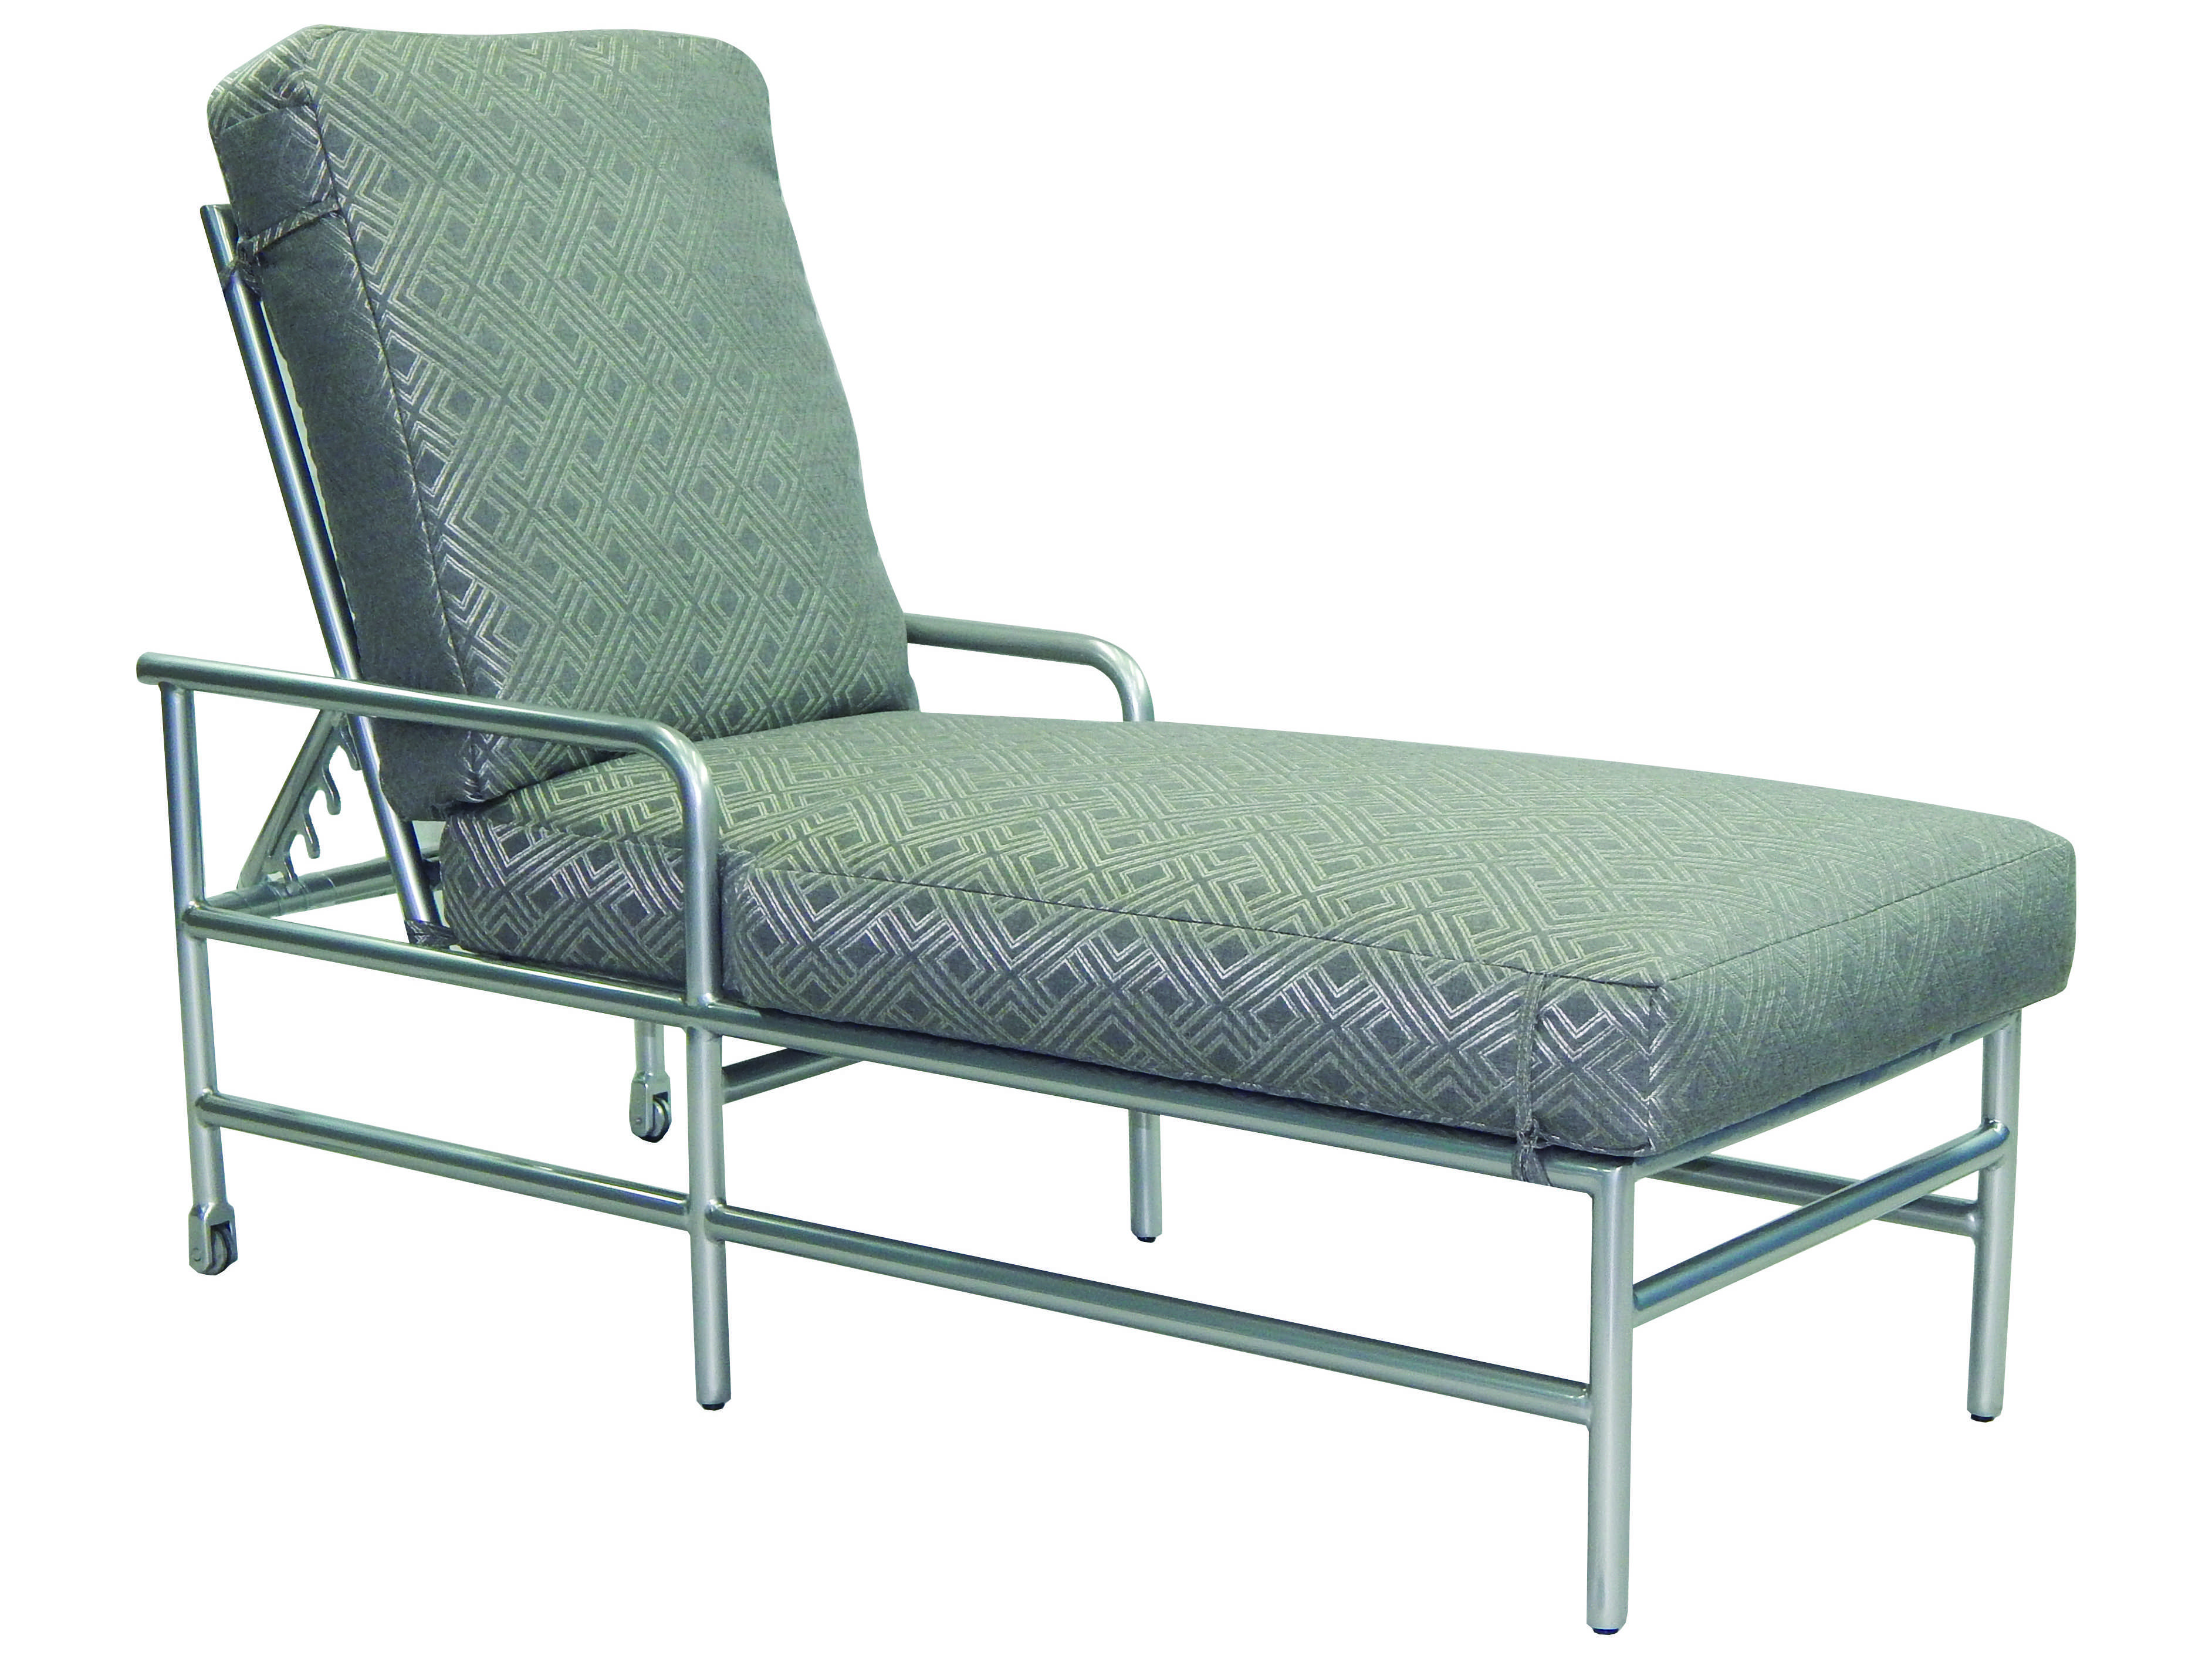 metal lounge chair with wheels walker transport in one hugo navigator castelle helios cushion aluminum adjustable chaise